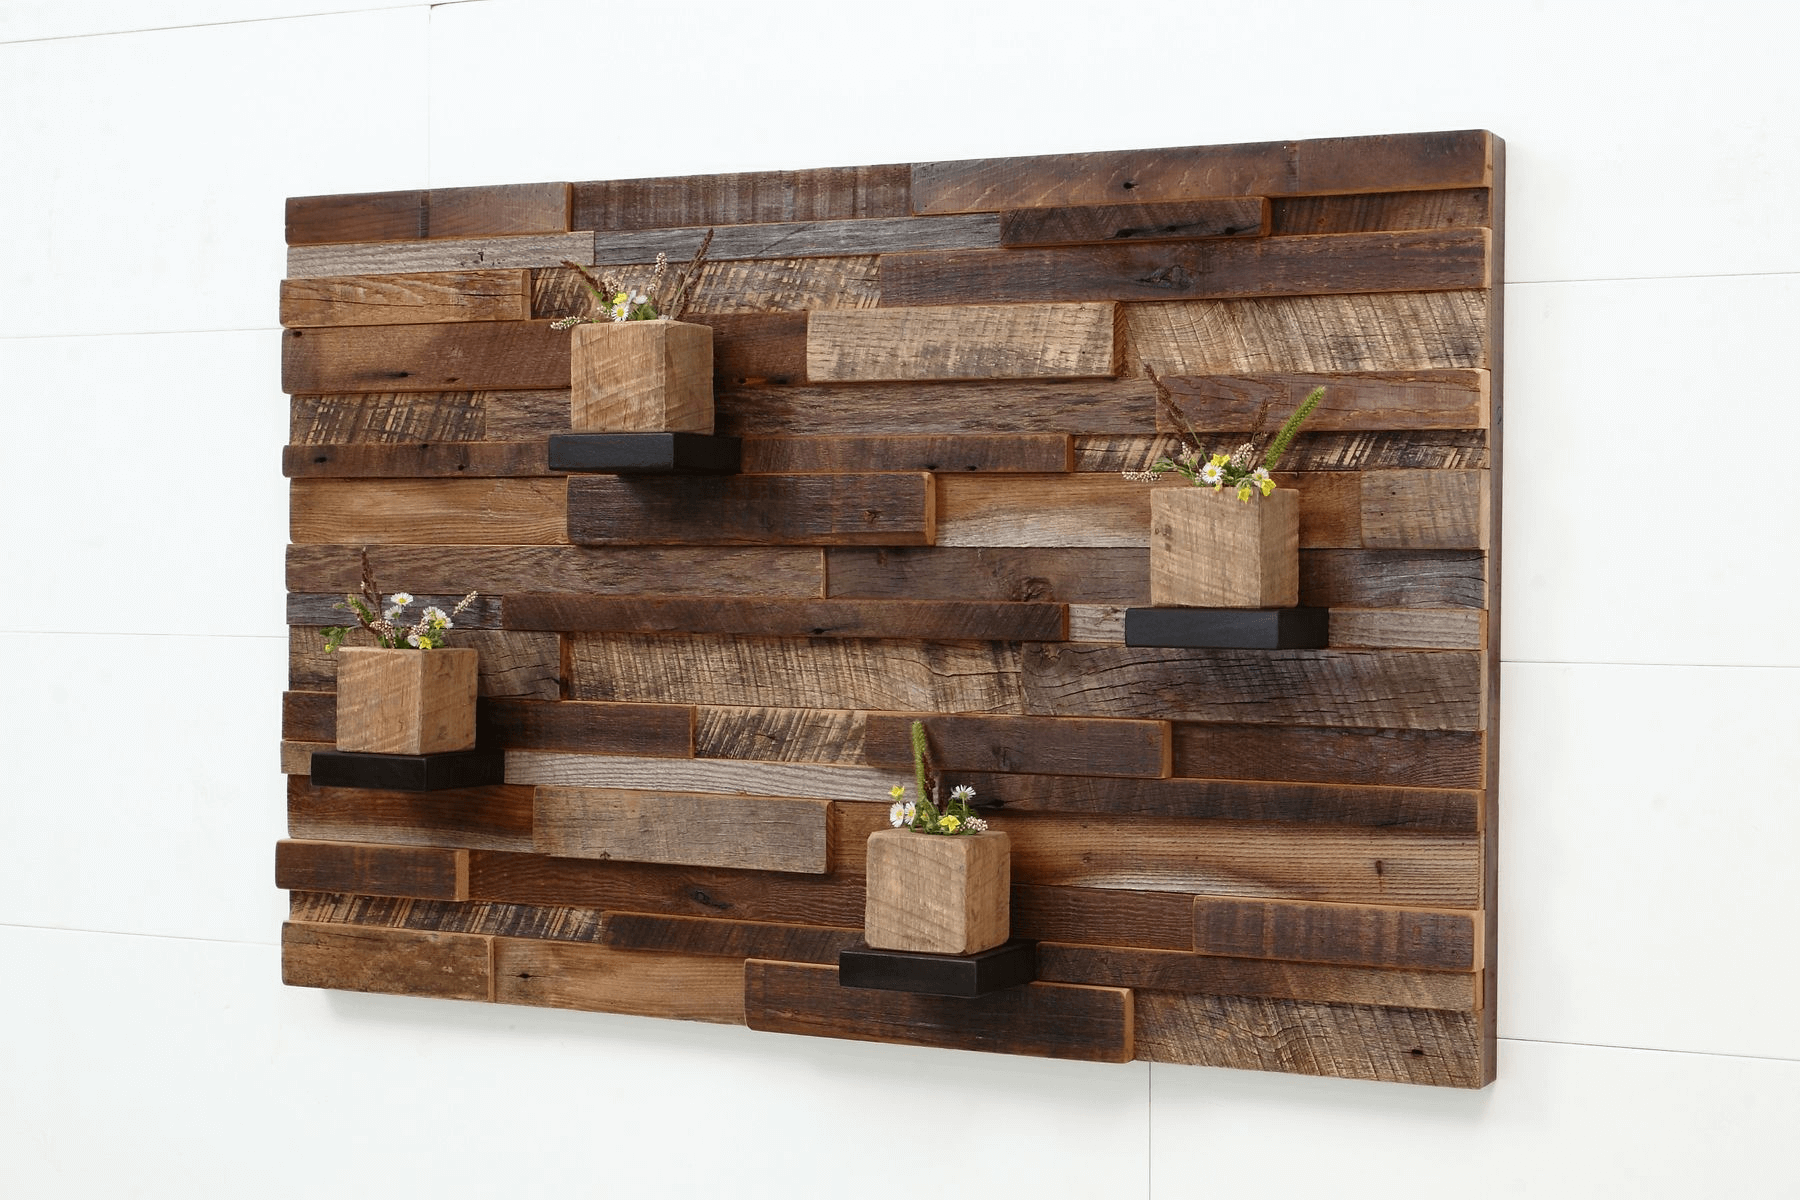 Wood wall art decor ideas with flower pots